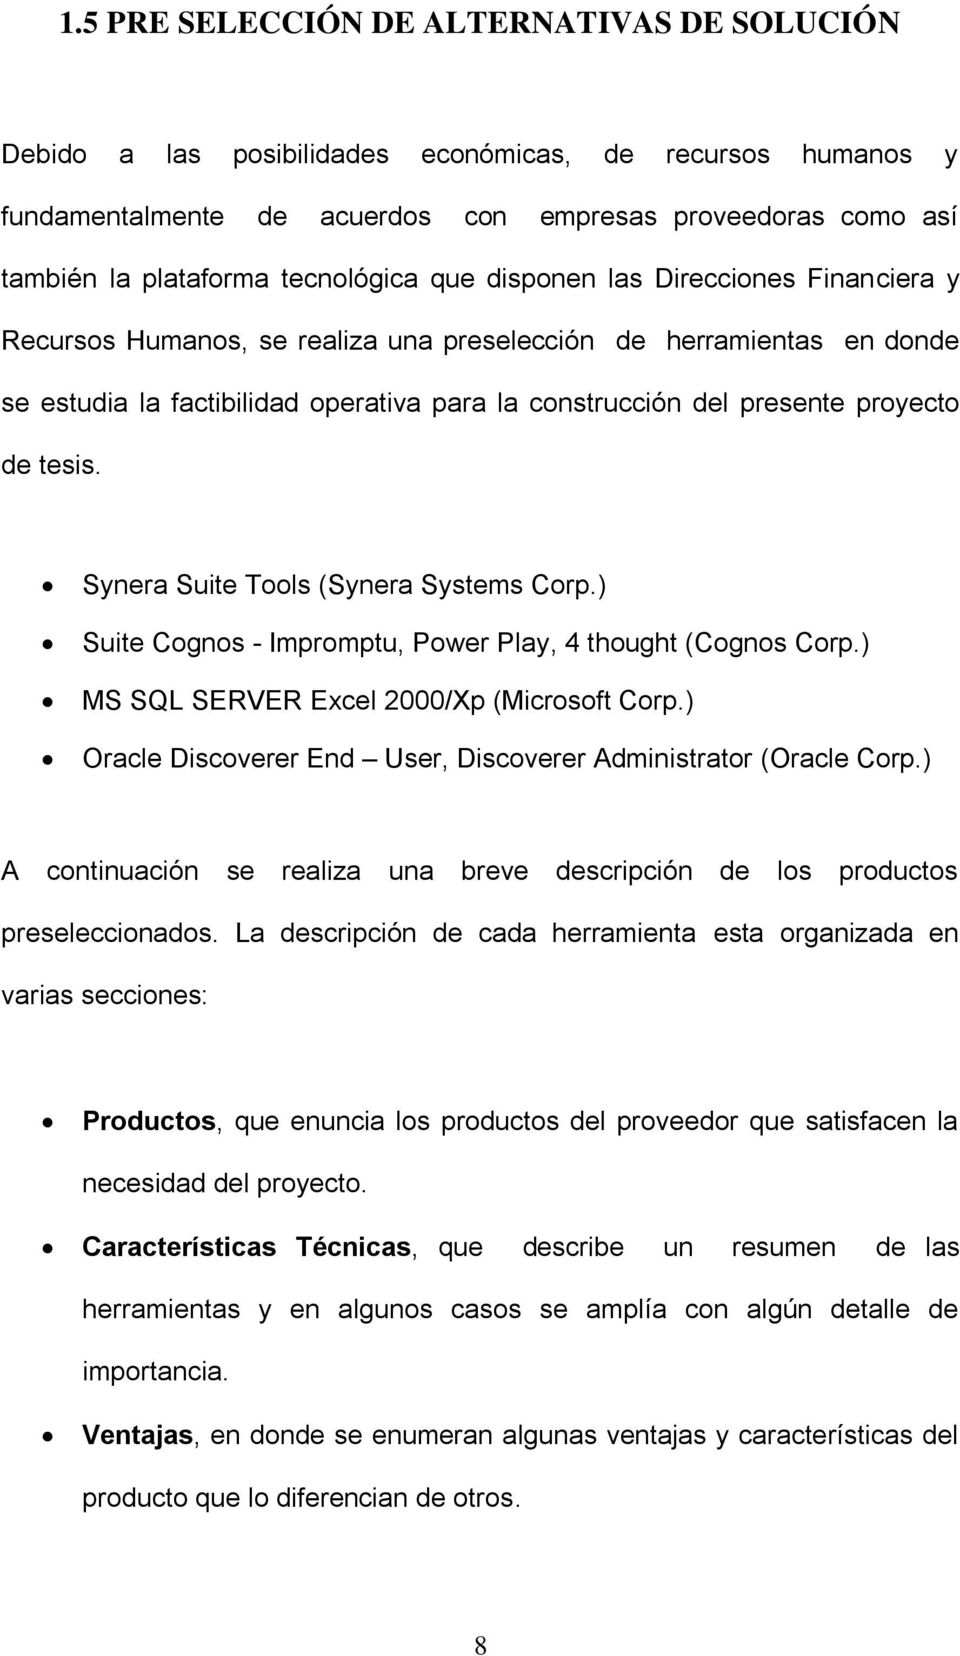 proyecto de tesis. Synera Suite Tools (Synera Systems Corp.) Suite Cognos - Impromptu, Power Play, 4 thought (Cognos Corp.) MS SQL SERVER Excel 2000/Xp (Microsoft Corp.